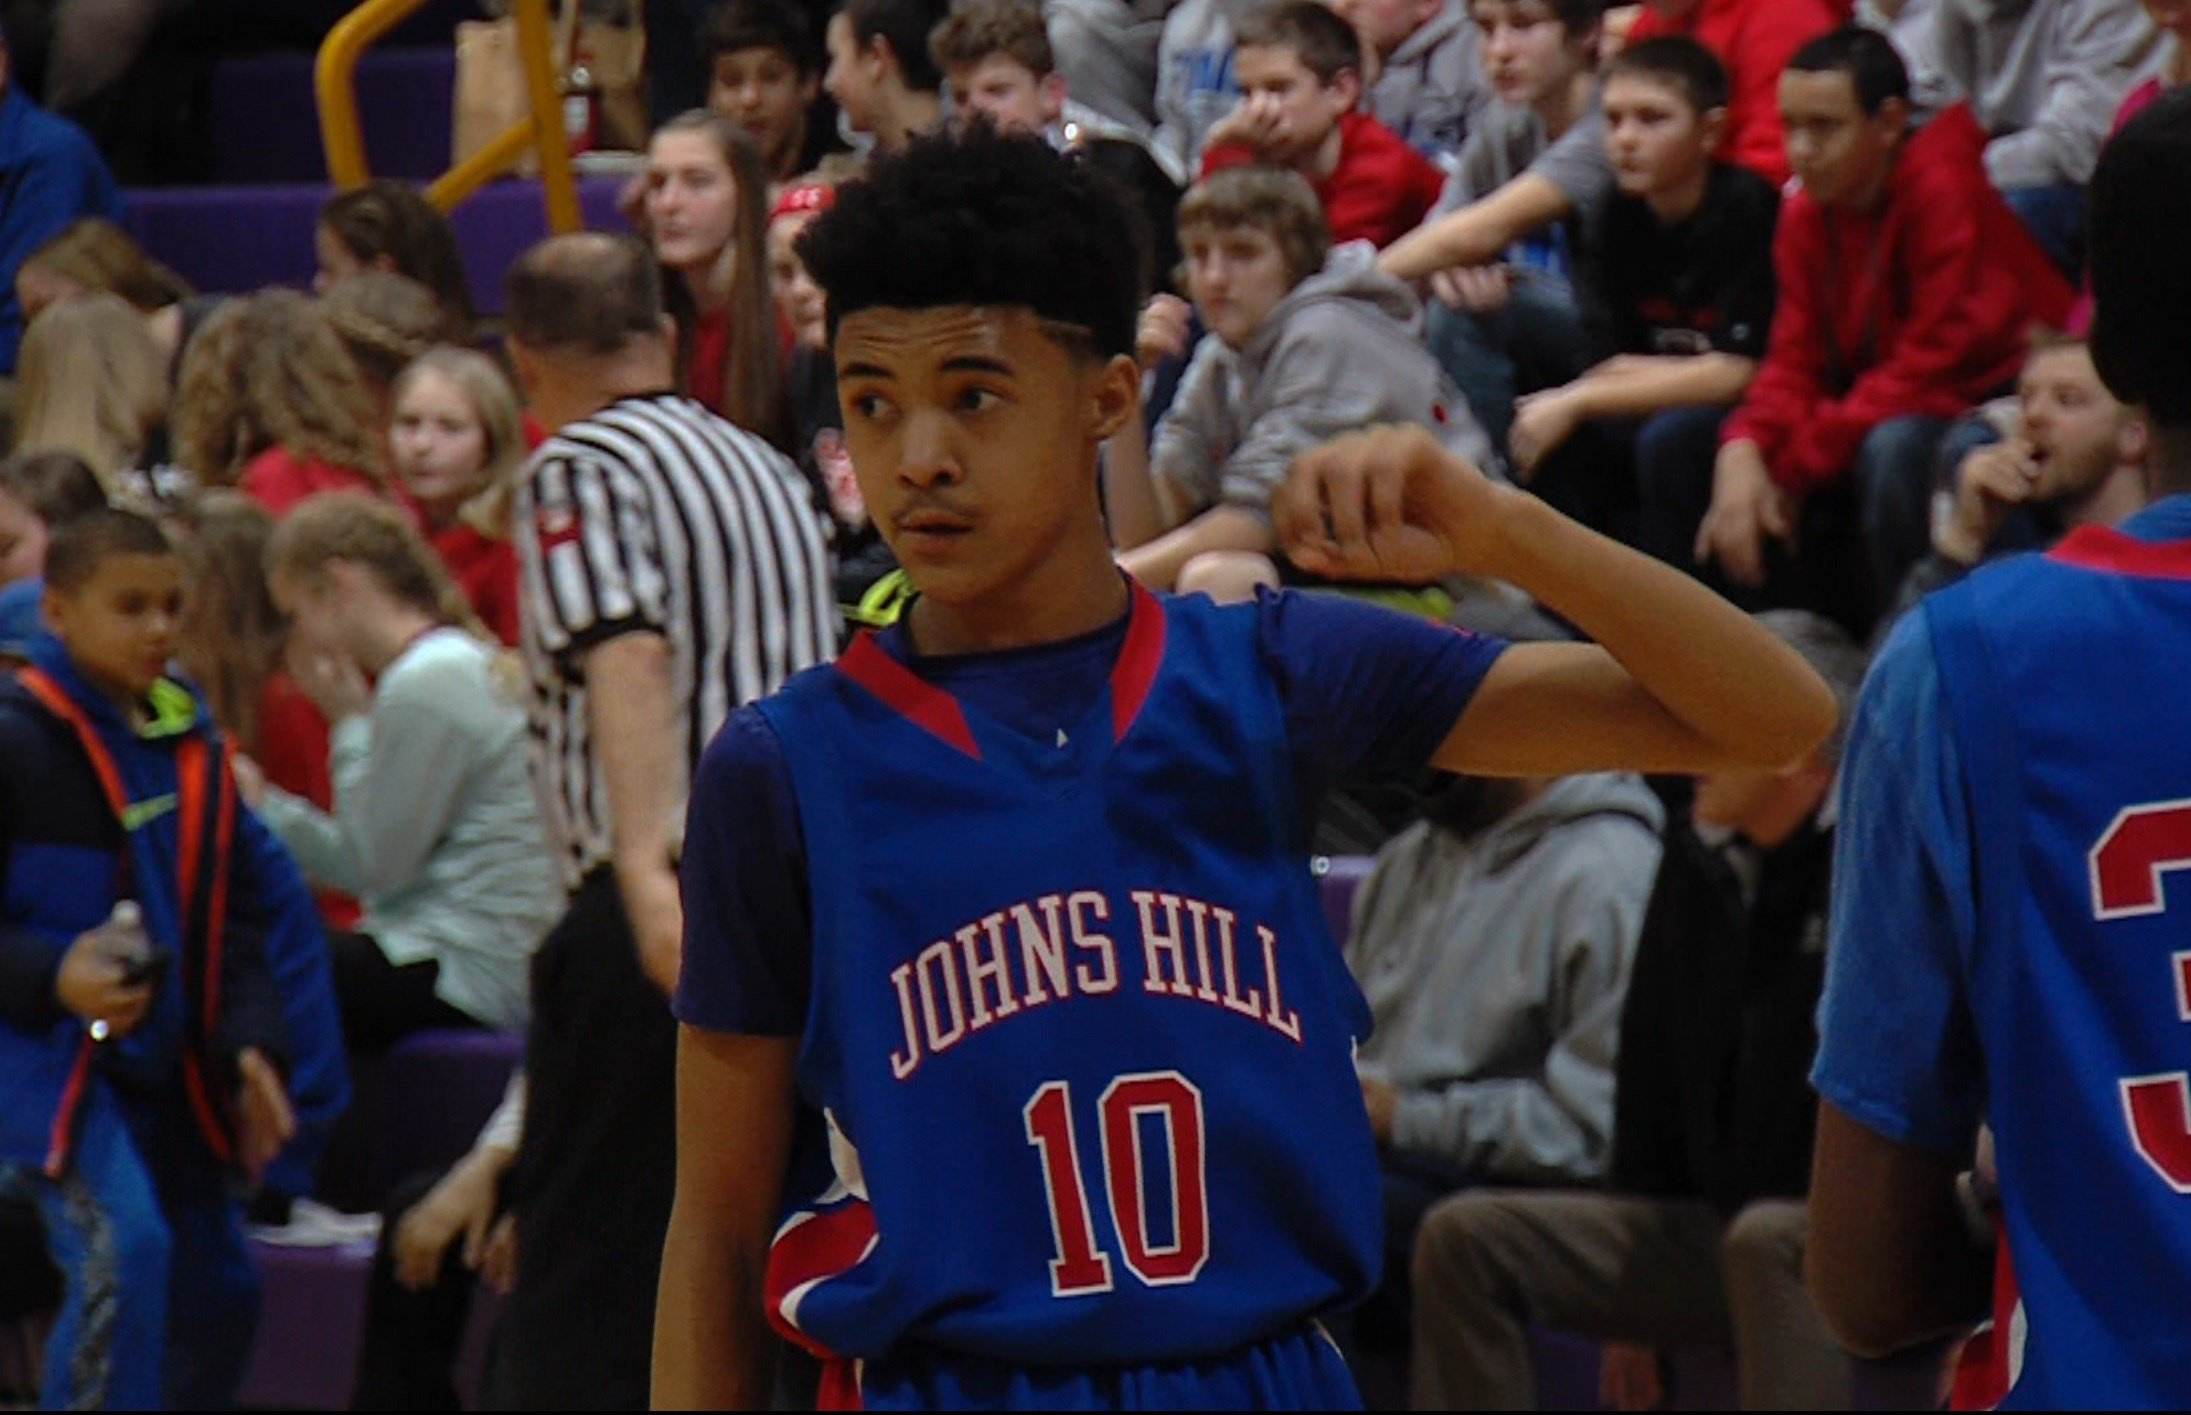 Johns Hill eighth grader RJ Walker had 19 points through three quarters in the 2A state championship game against Jesse White (Hazel Crest) on Thursday night in Mt. Pulaski.